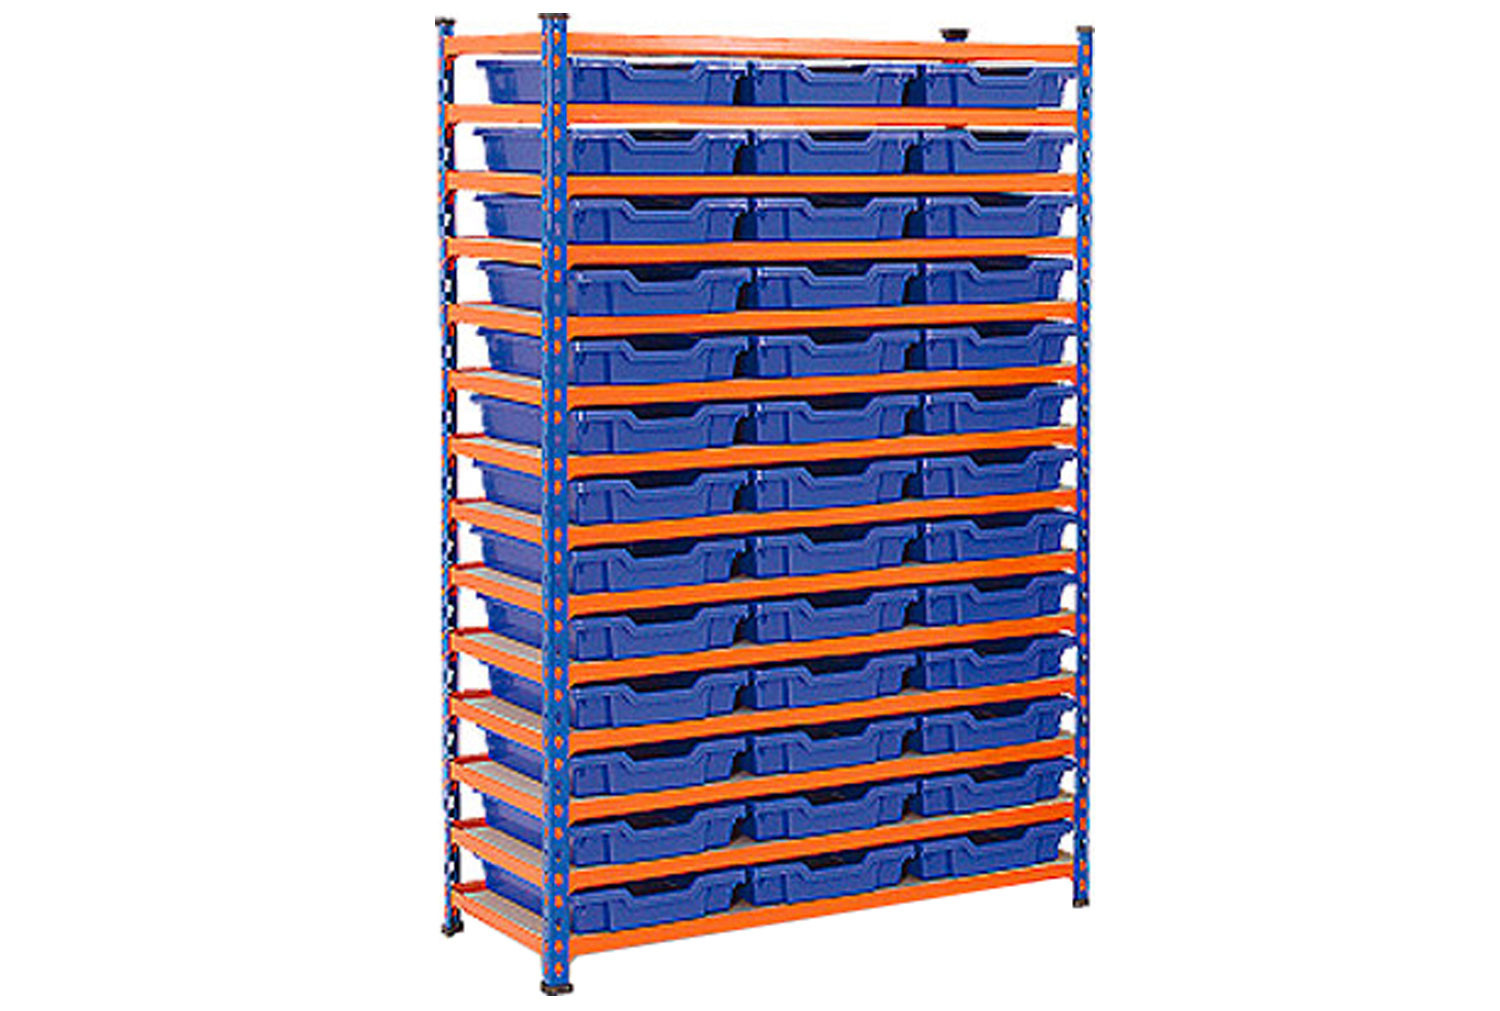 Rapid 2 shelving bay with 39 shallow Gratnells trays